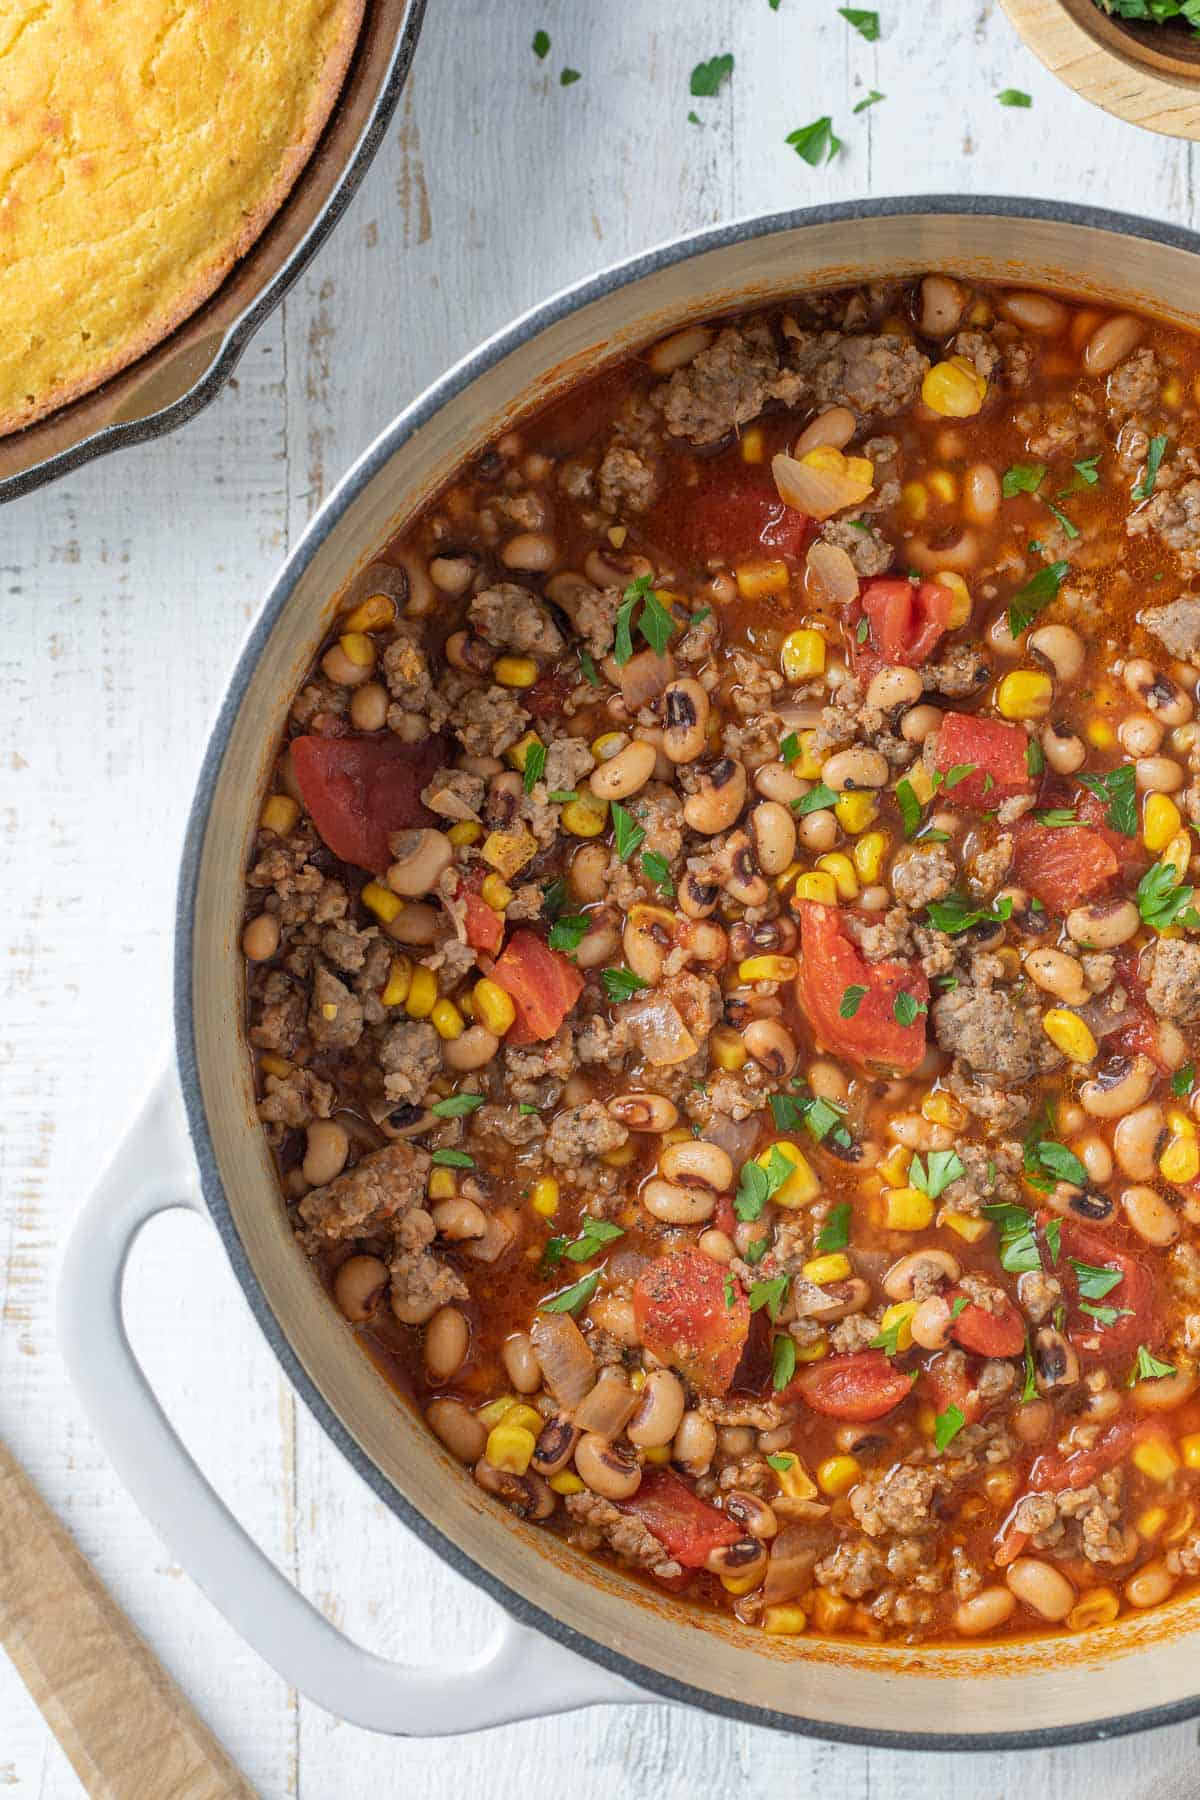 Overhead closeup view of black-eyed pea and sausage stew in a white Dutch oven.